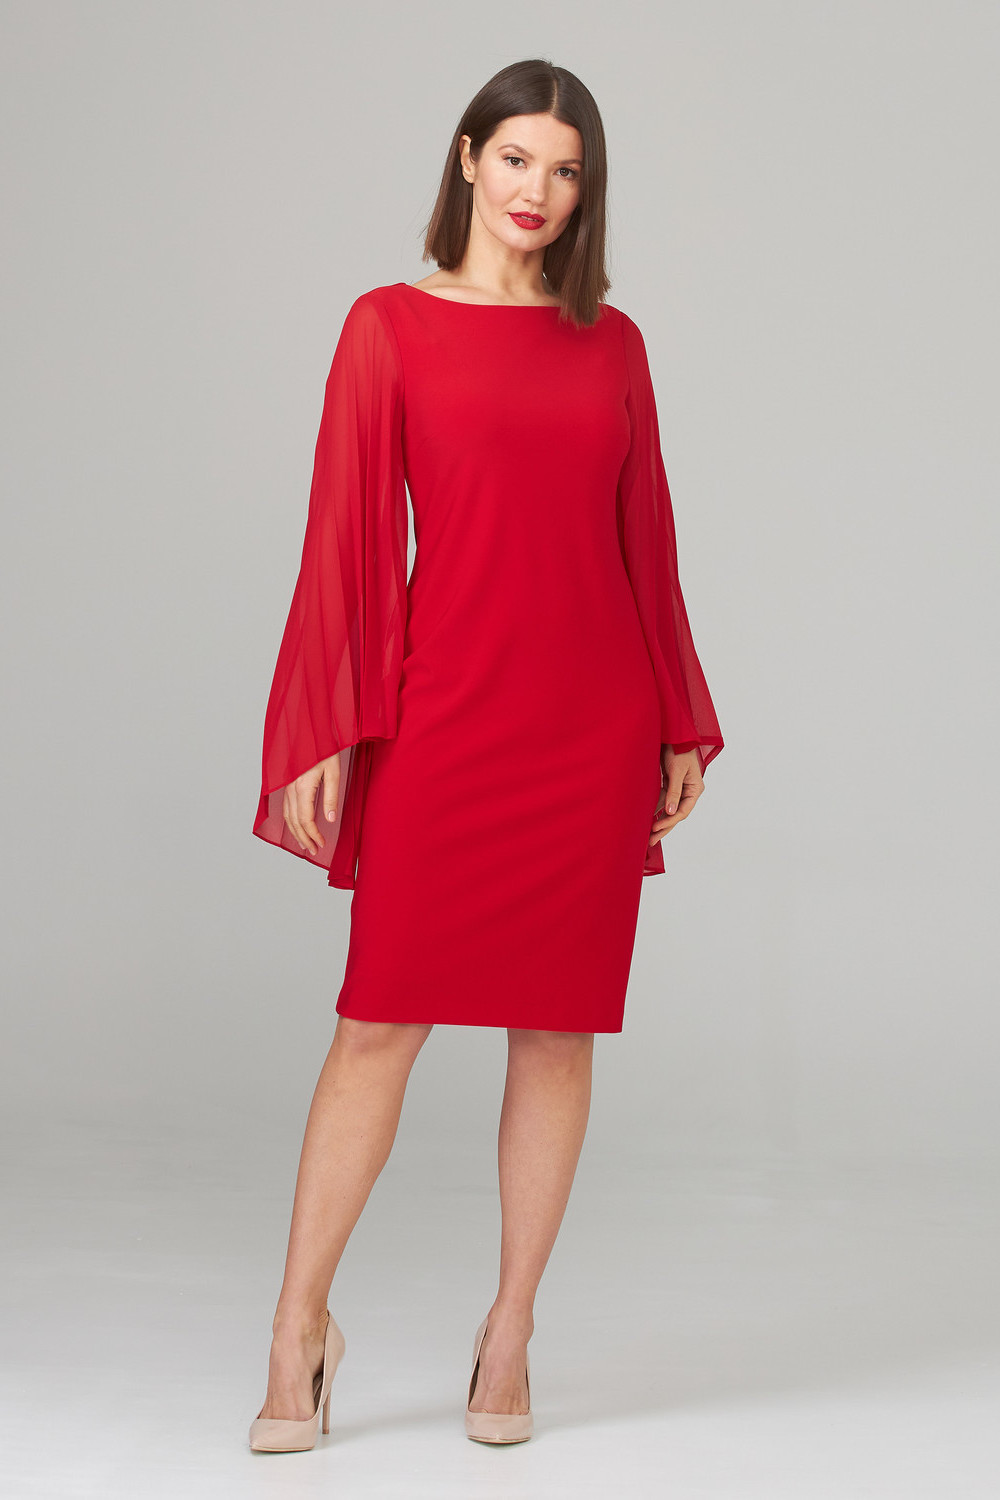 Joseph Ribkoff Robes Rouge A Levres 173 Style 201417